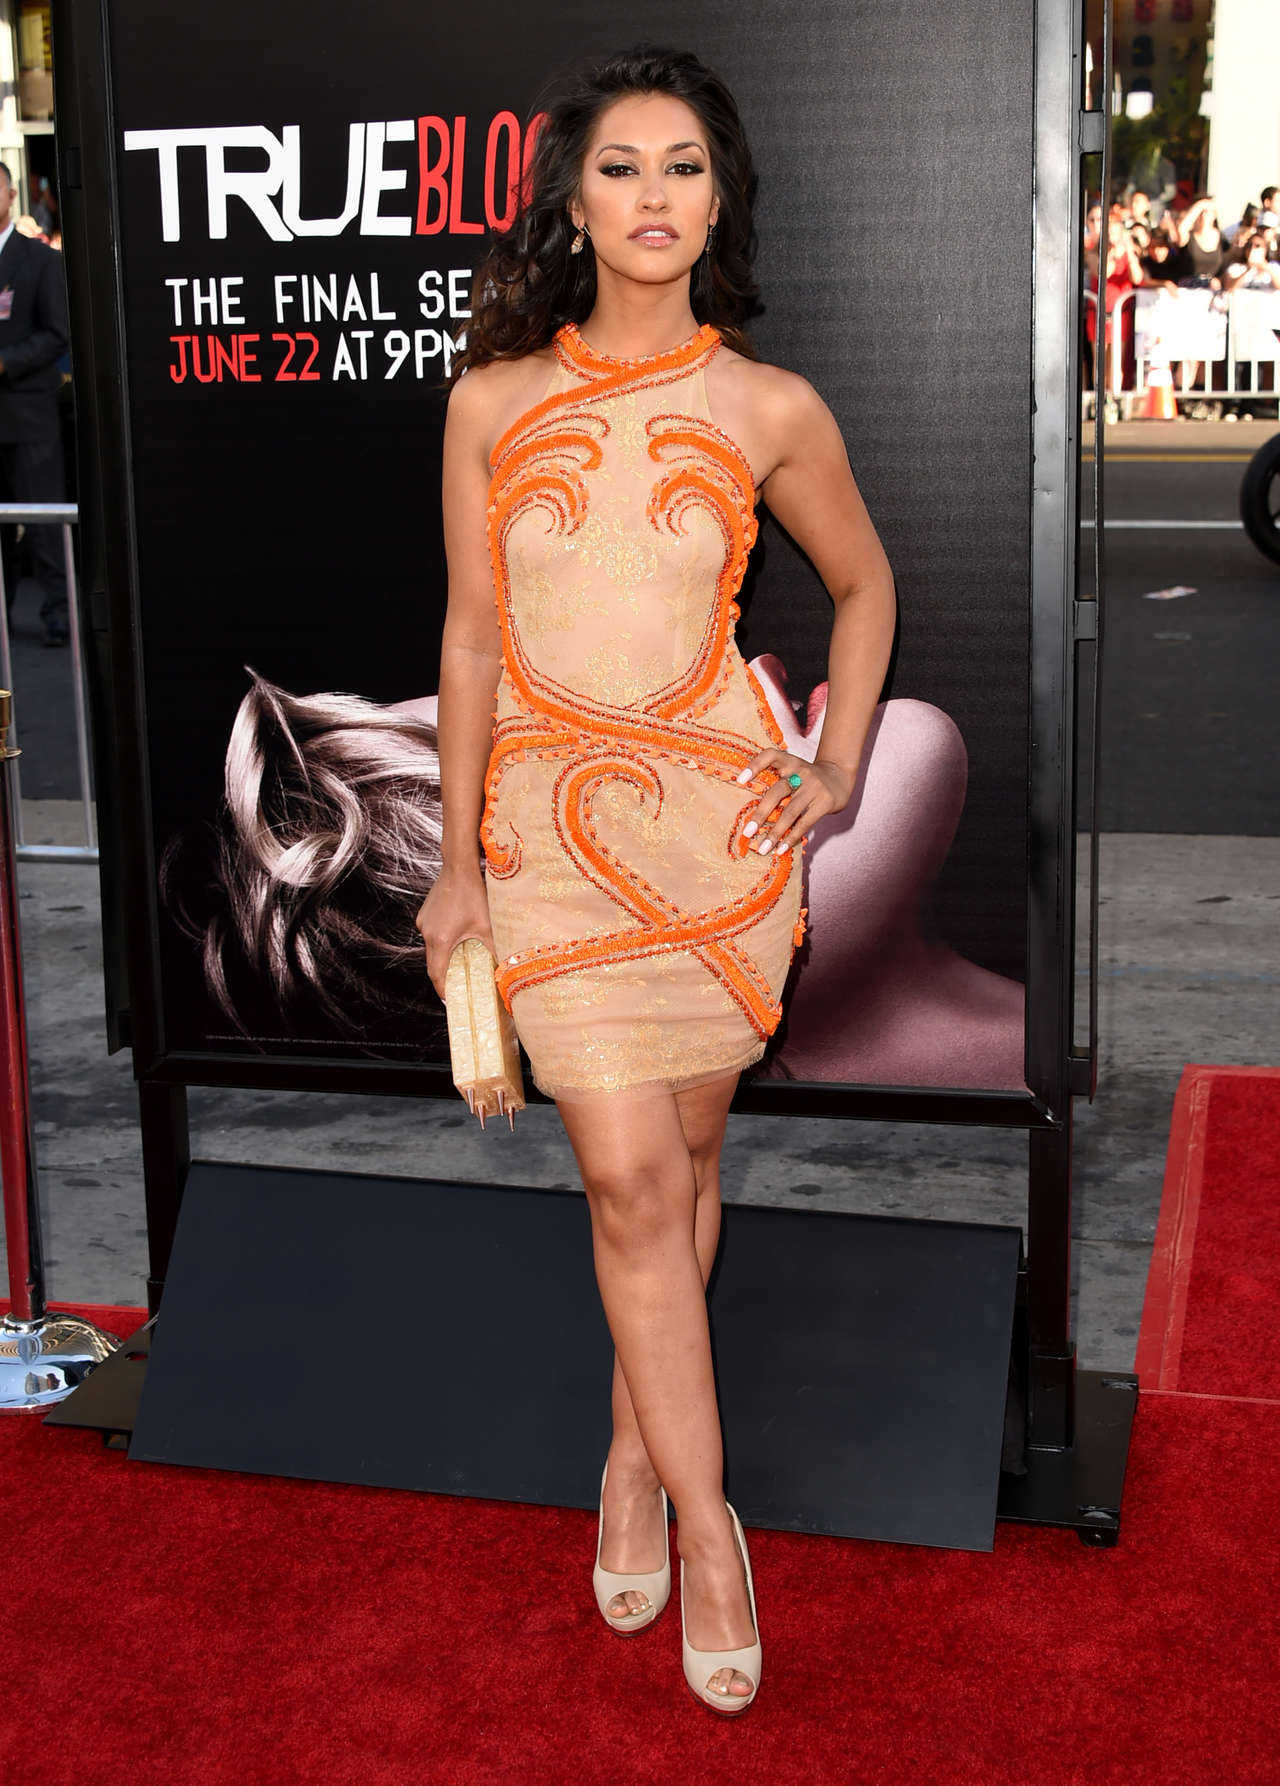 Janina Gavankar True Blood Season premiere in Hollywood